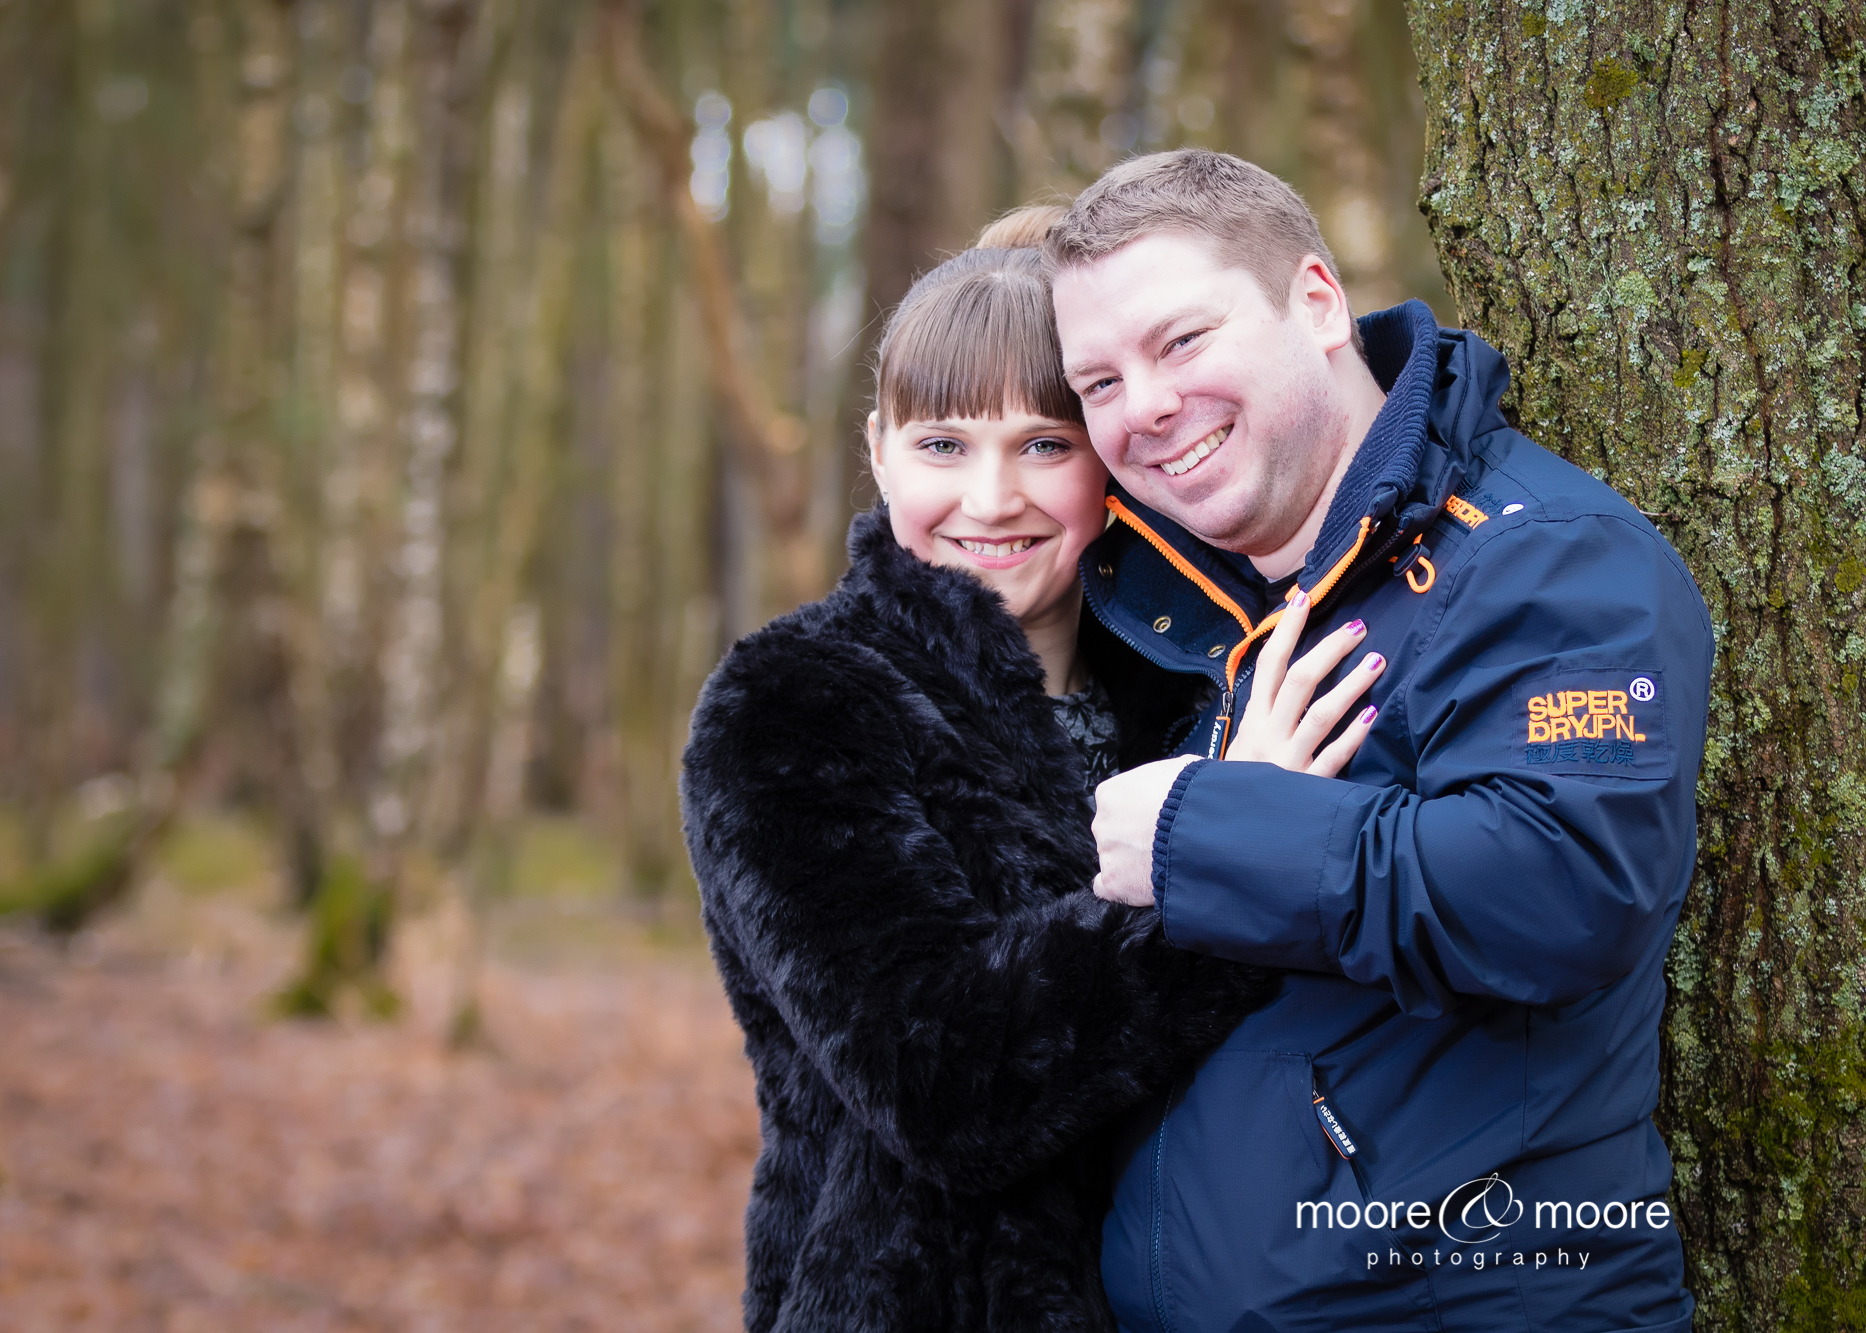 we love this portrait of the engaged couple - engagement photography down in the woods. photo by Helen Moore at moore&moore photography, Hampshire